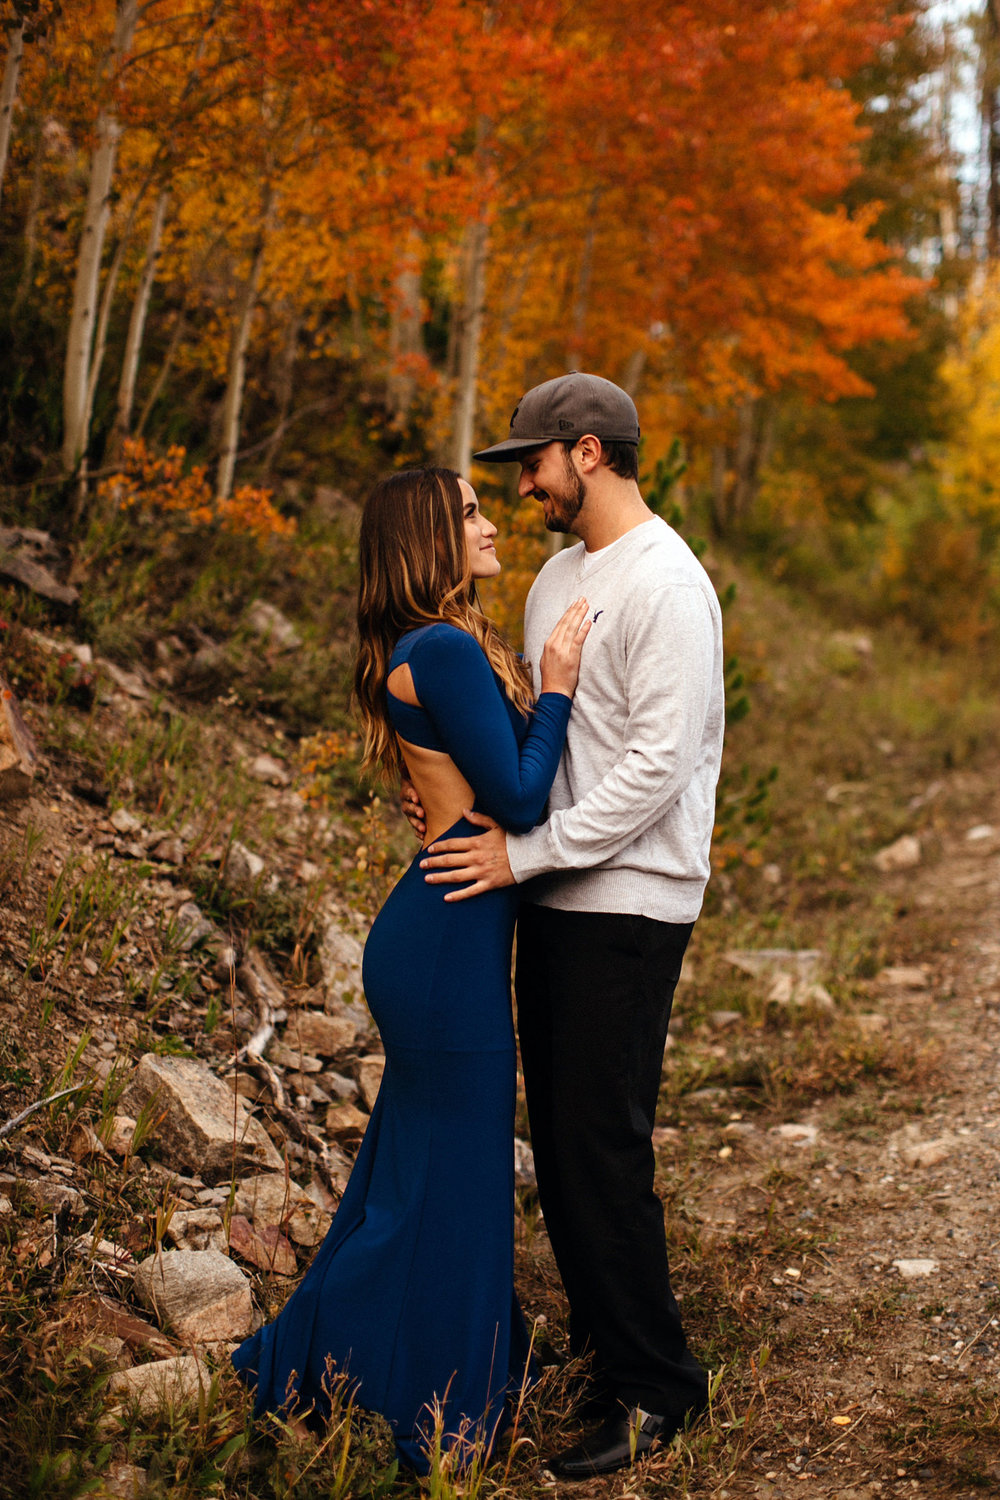 Liz Osban Photography Cheyenne Wyoming Engagement Wedding Photographer couple adventure elopement wedding laramie denver fort collins colorado rocky mountain national park39.jpg